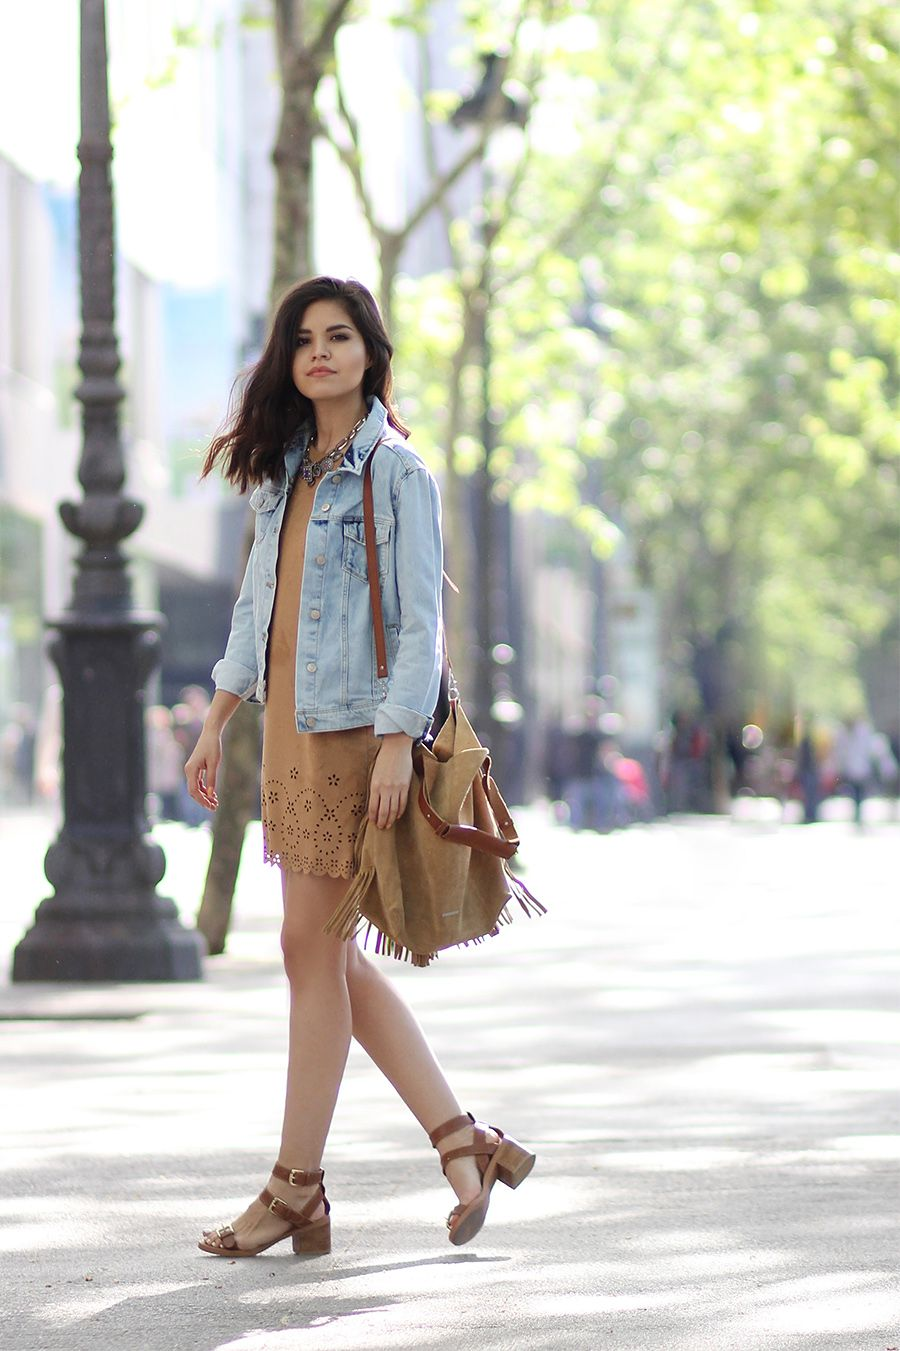 How To Wear A Suede Dress  Adriana Gastélum is wearing a camel suede dress  with a fringed suede sidebag 37d70d63a